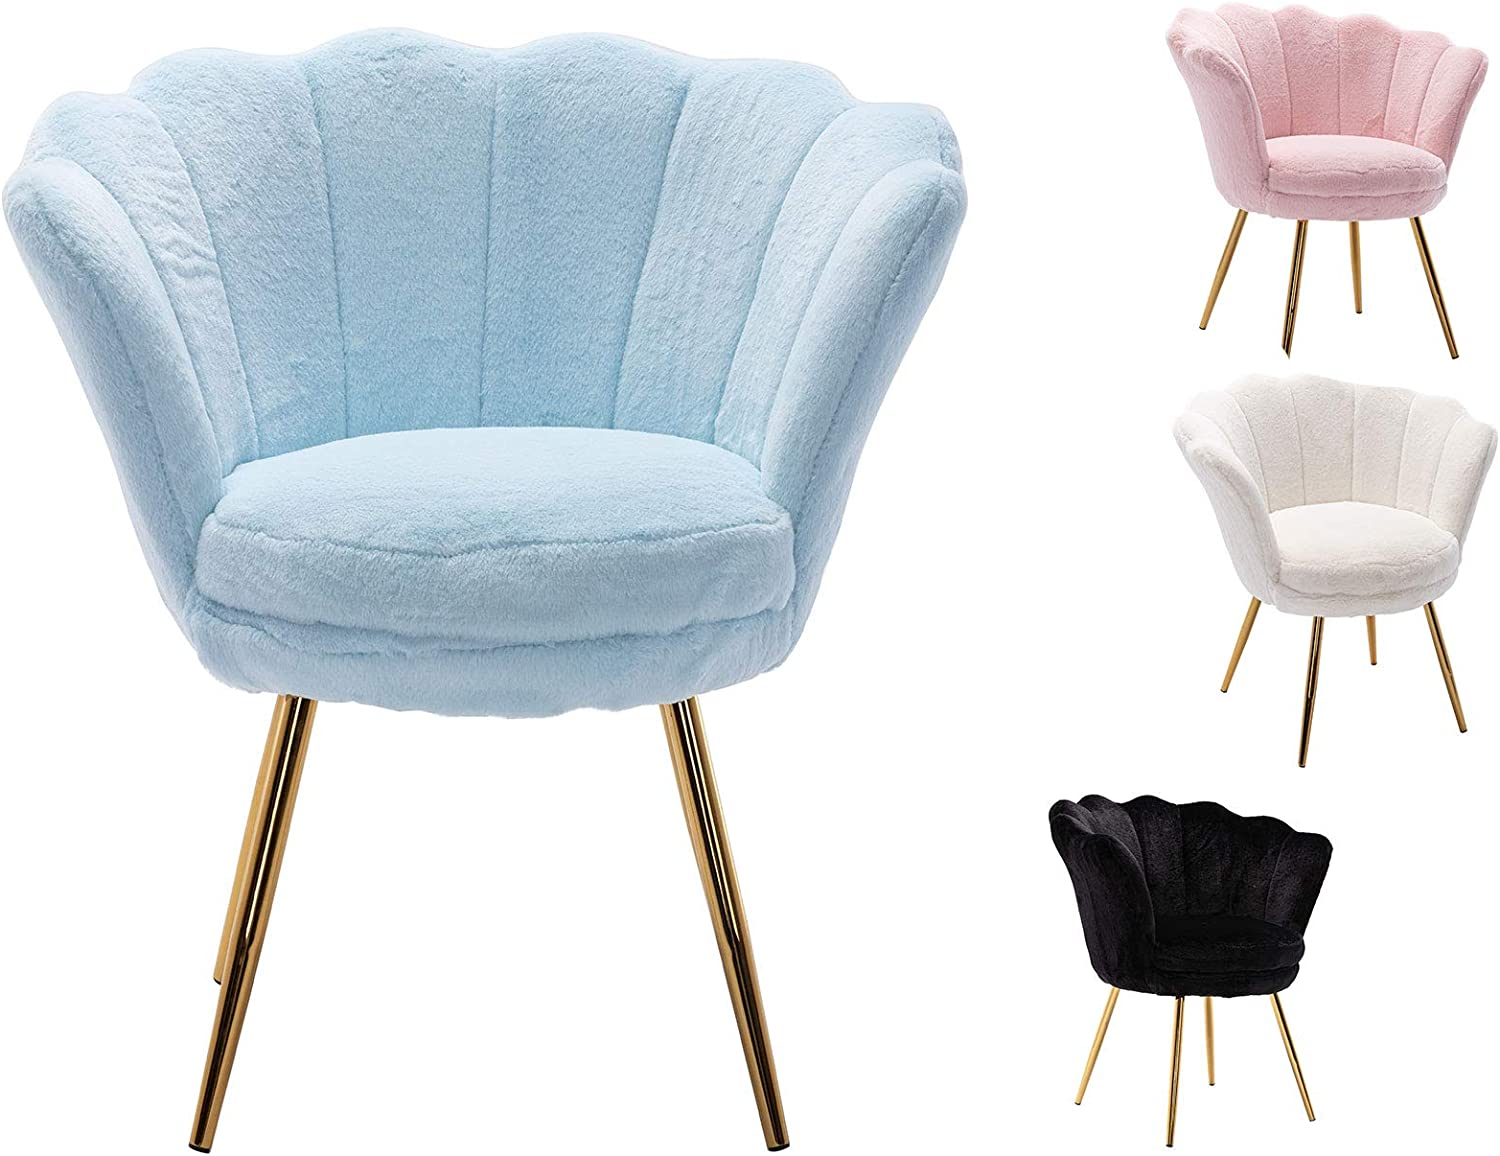 Guyou 物品 Modern アイテム勢ぞろい Comfy Accent Chair for Room Desk Fa Living Bedroom